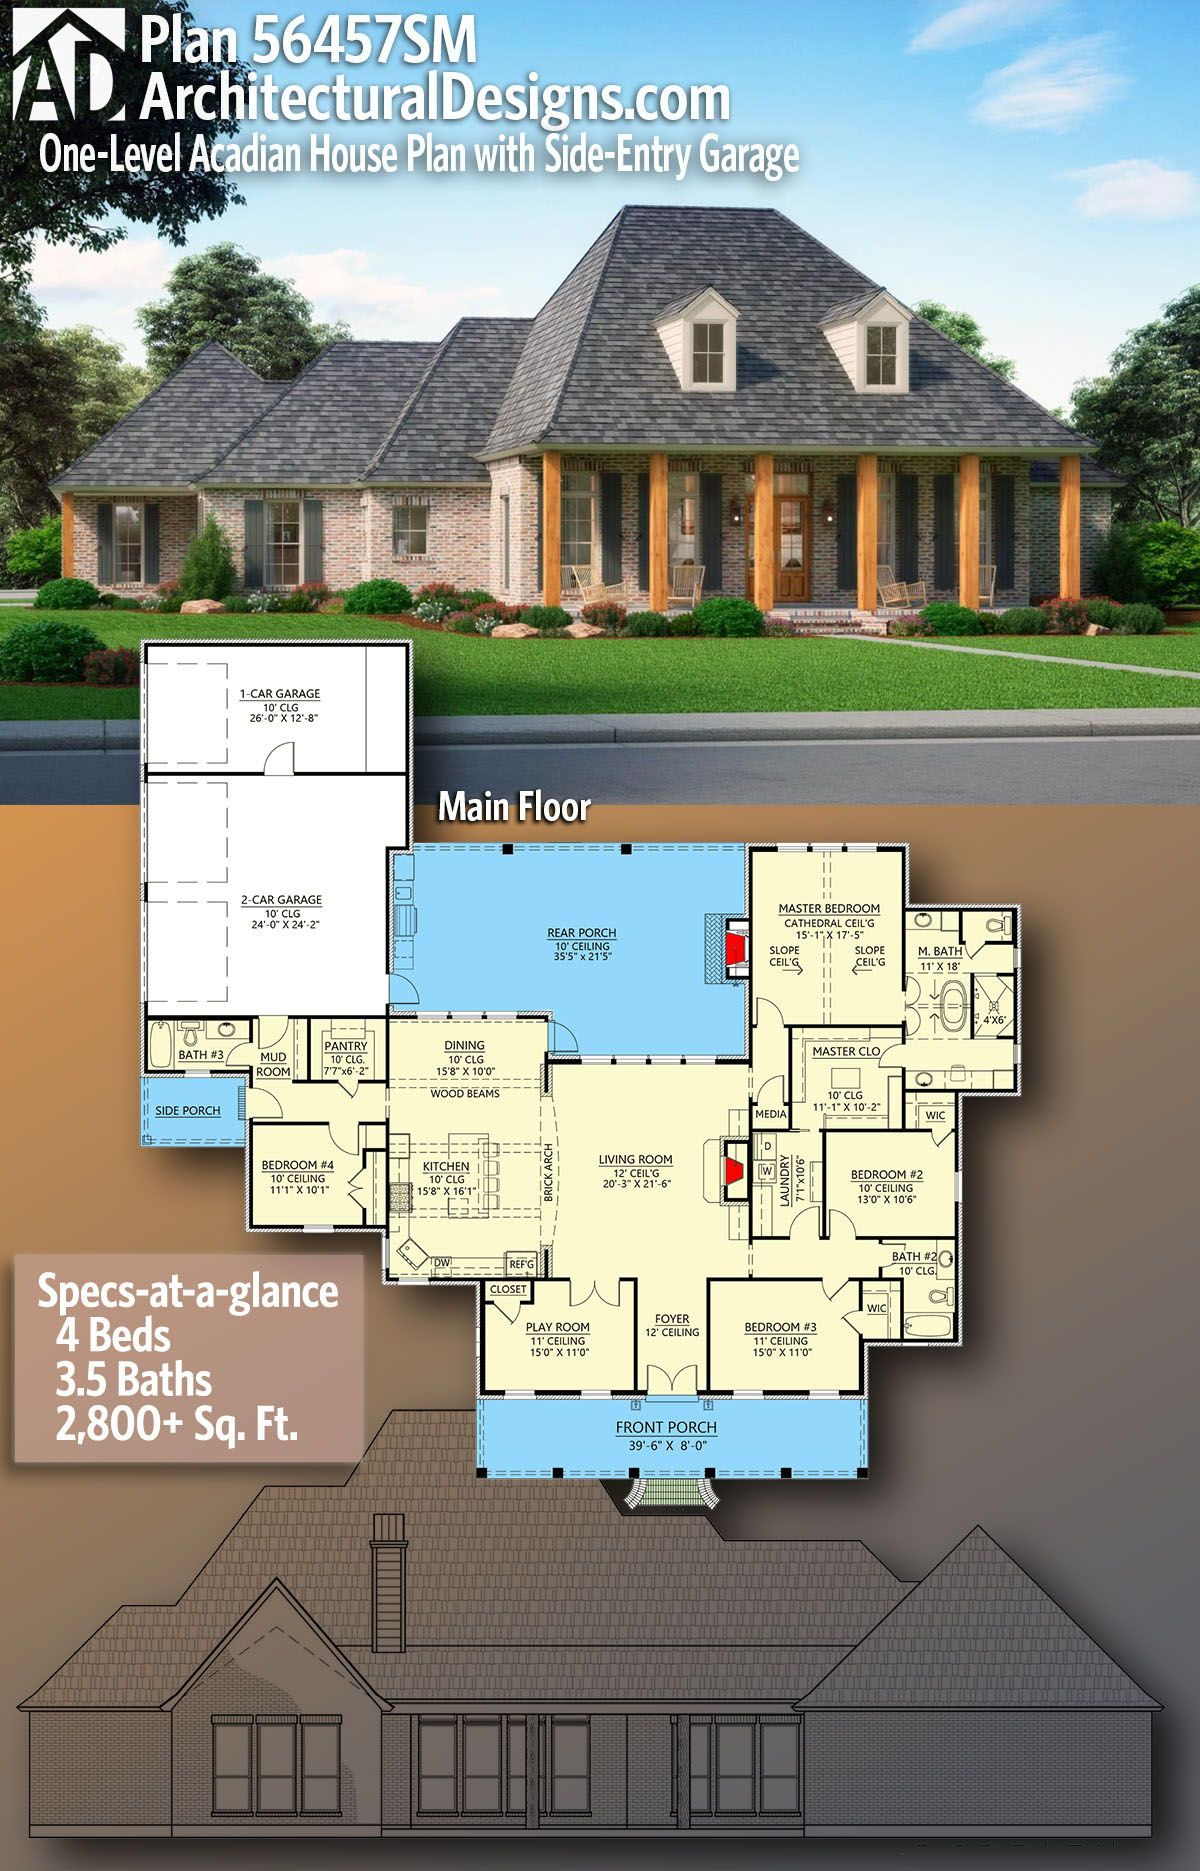 Plan 56457sm One Level Acadian House Plan With Side Entry Garage Acadian House Plans Barn House Interior Country House Plans